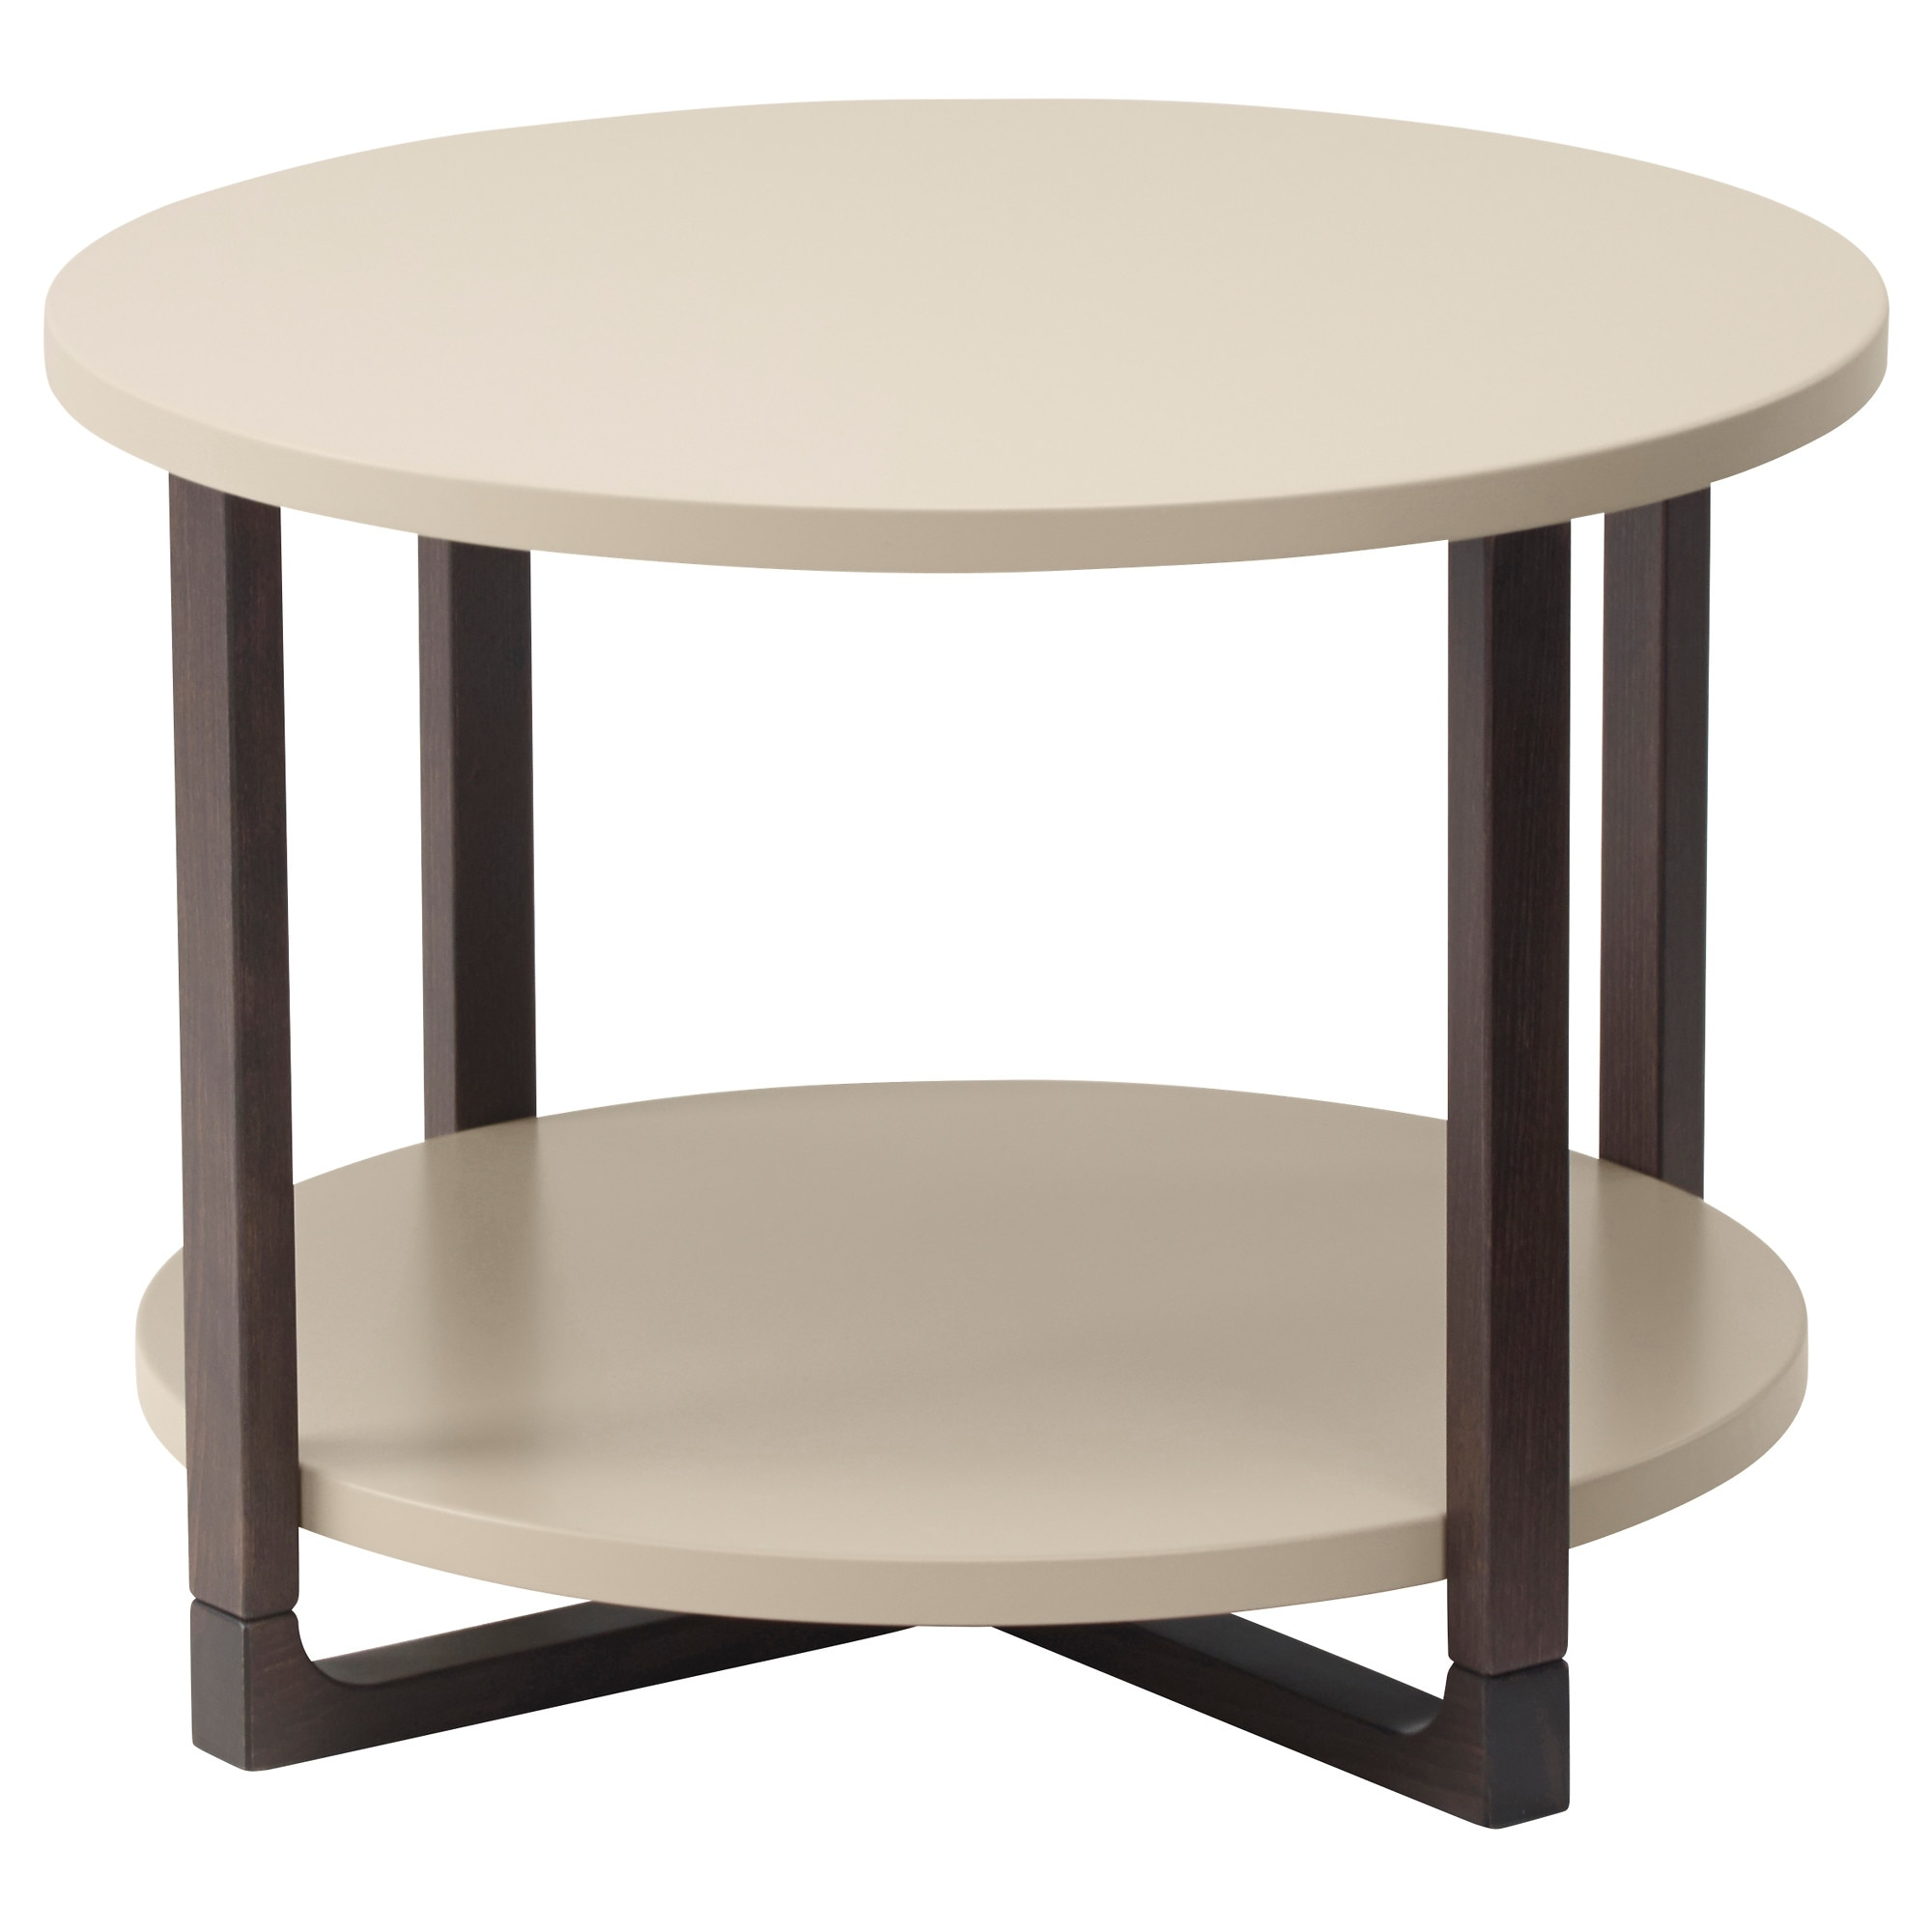 RISSNA Side table IKEA